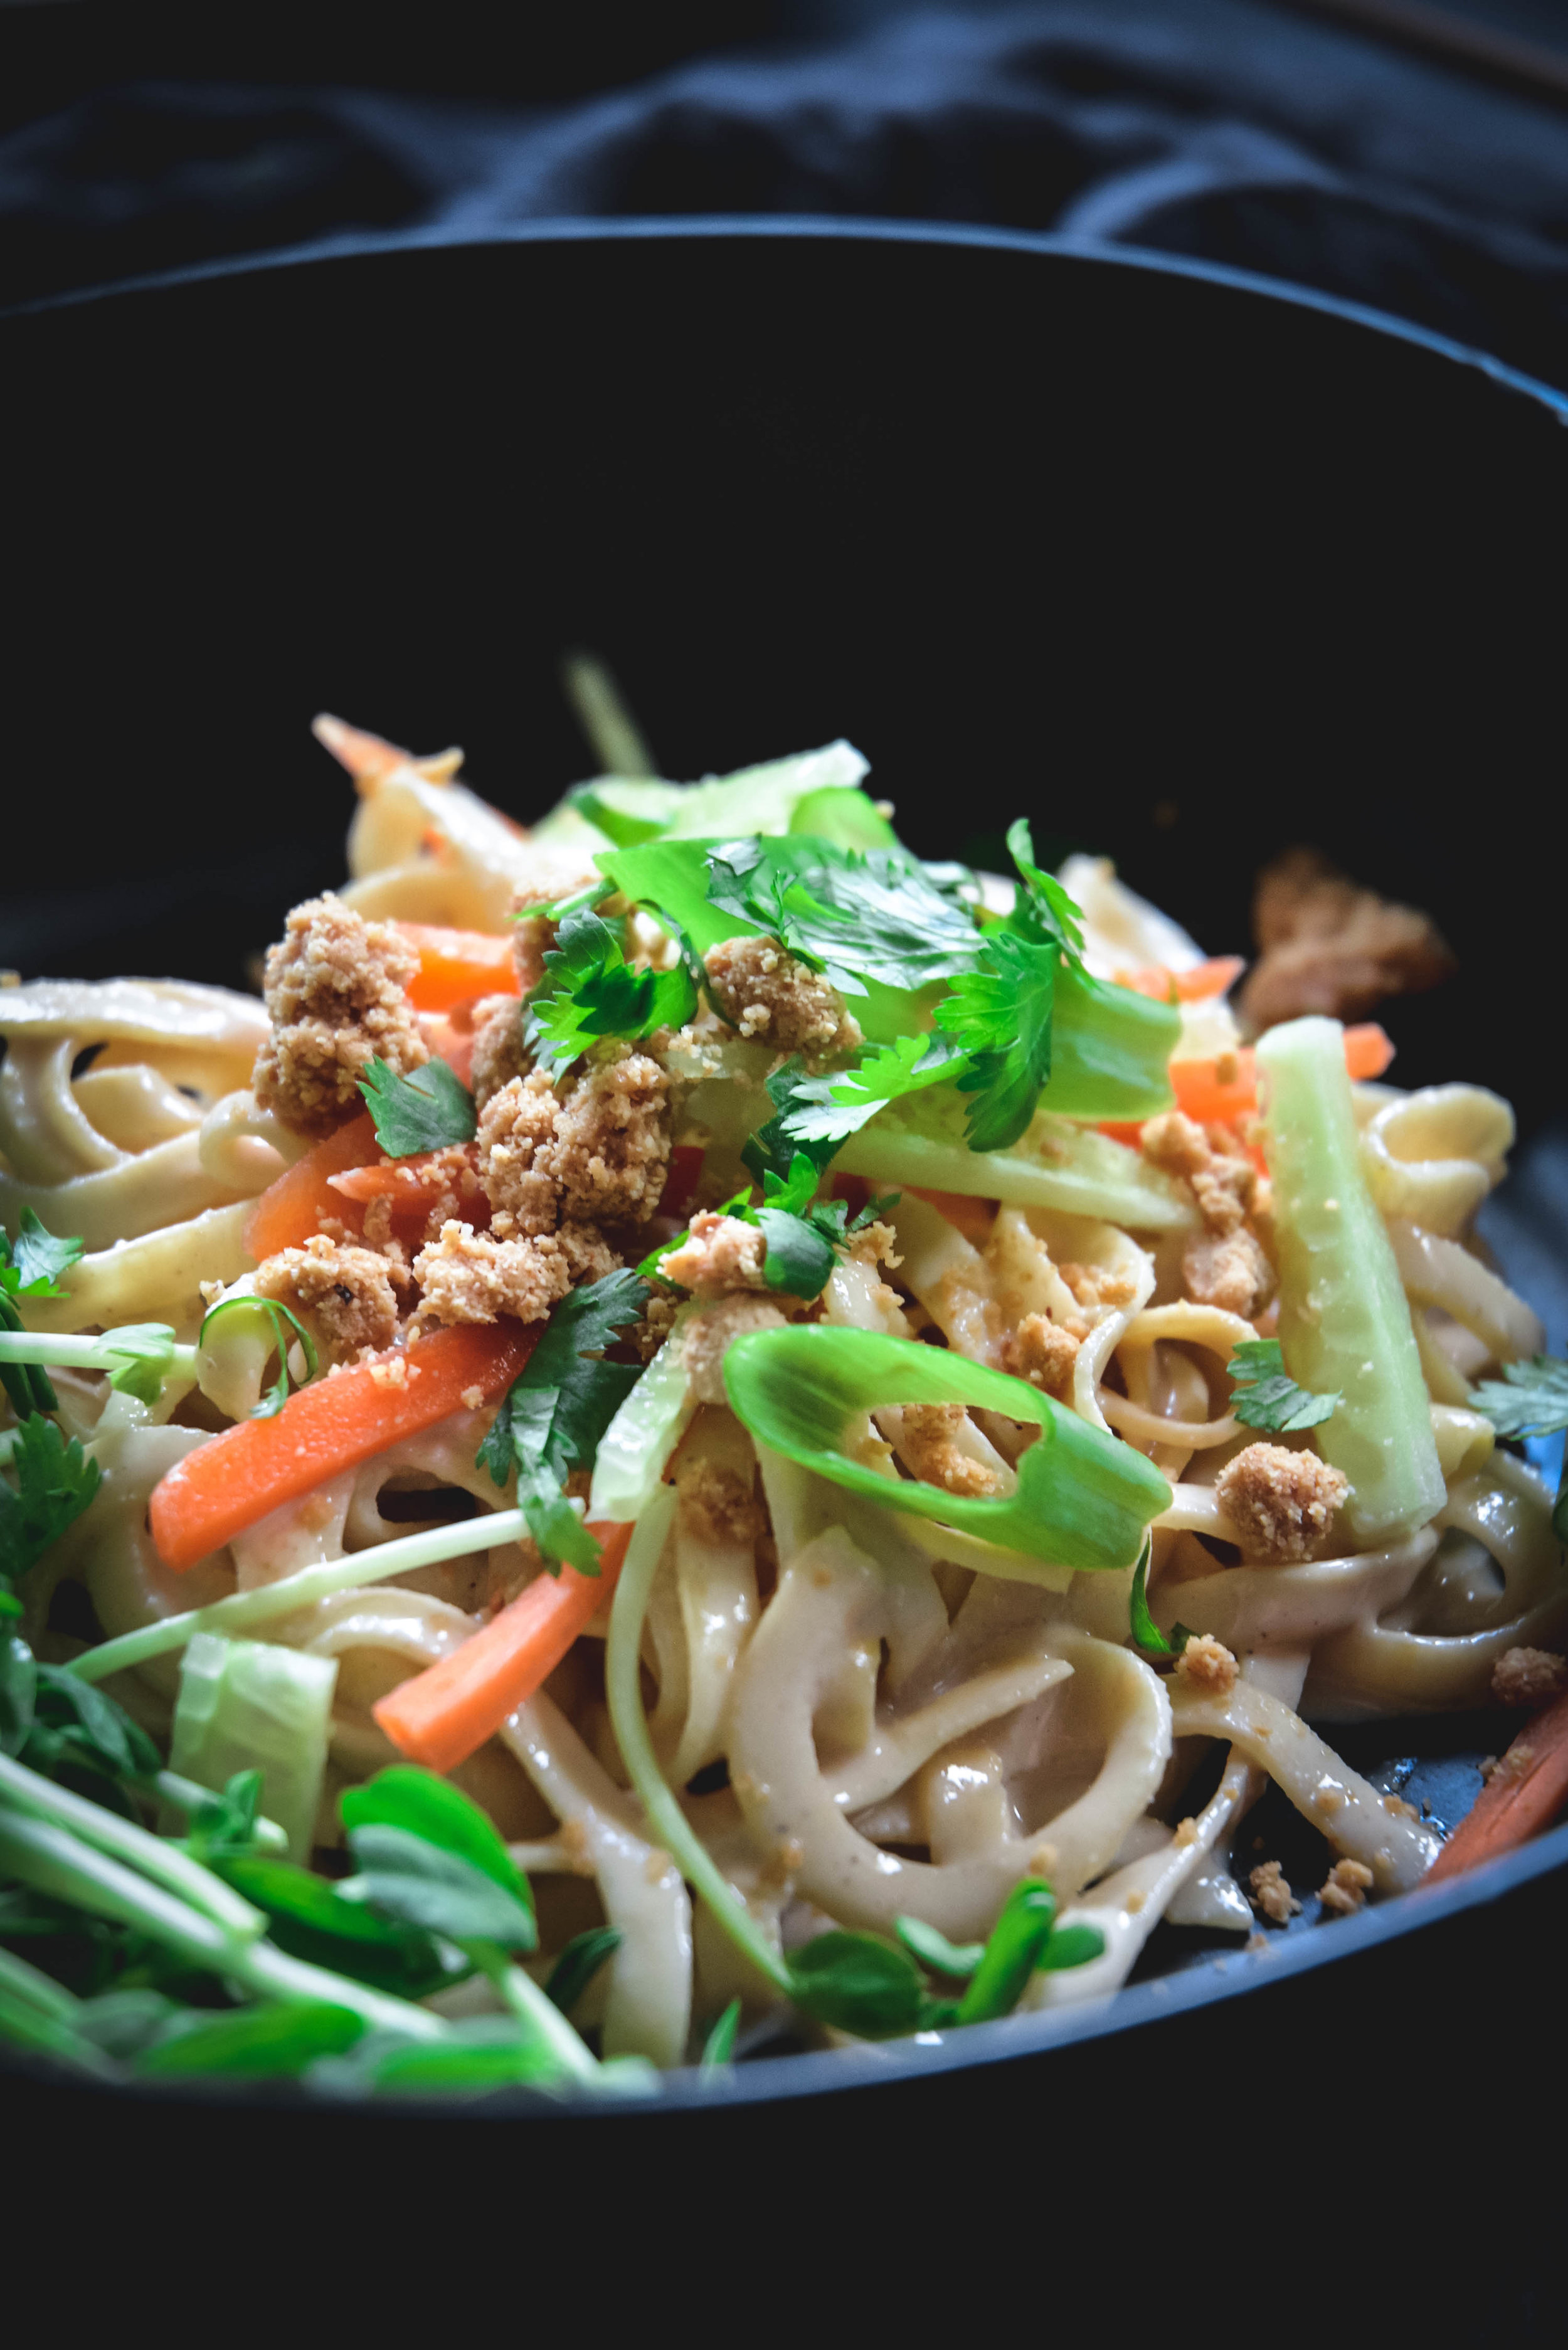 Rutabaga noodles in bowl with casew crumble, cilantro and scallions, carrots